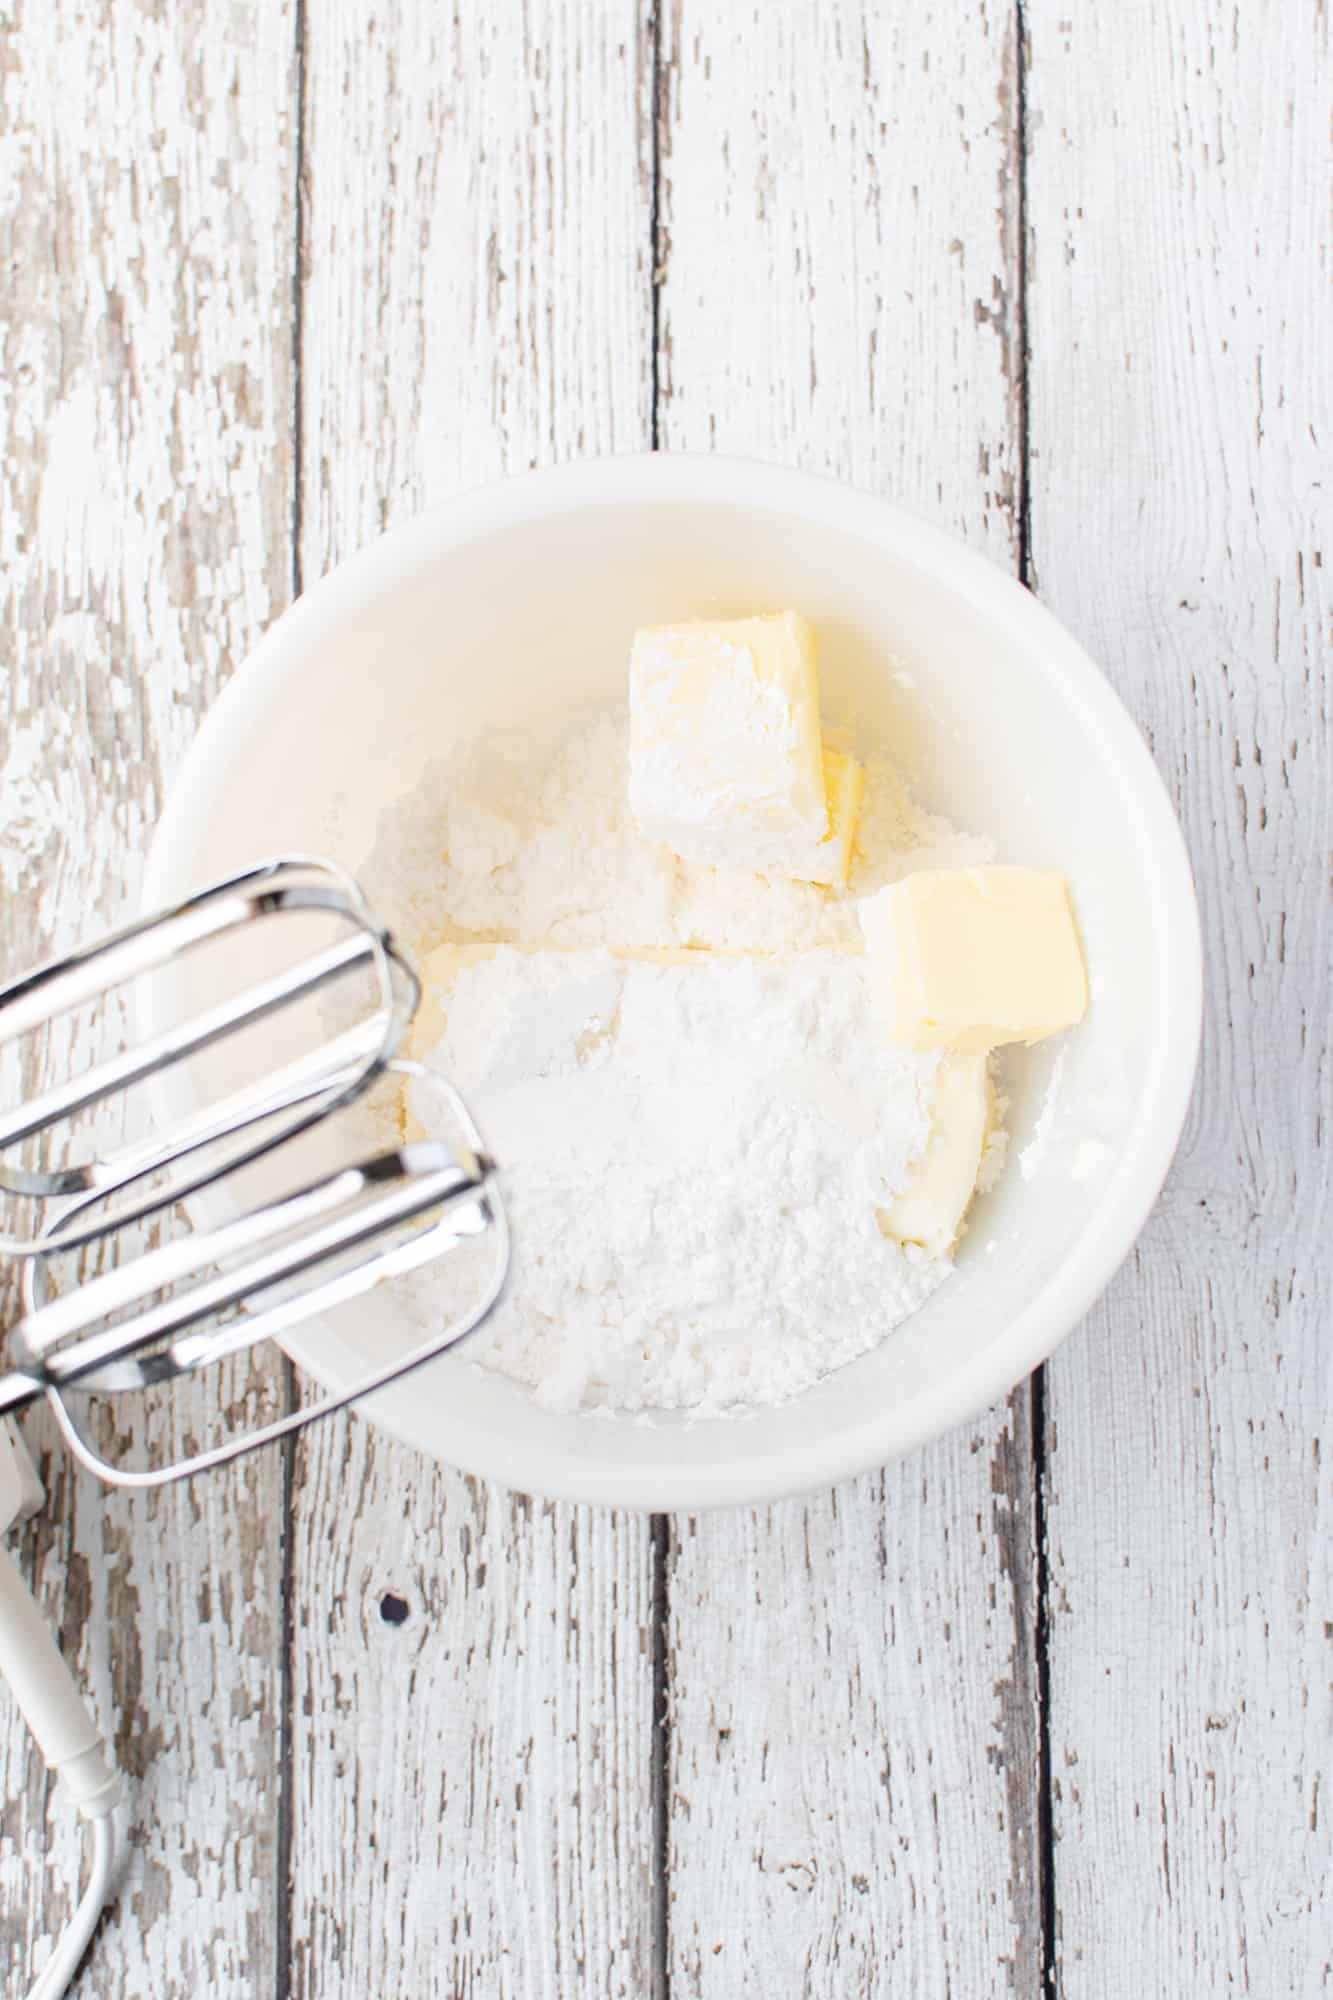 softened cream cheese and softened butter mixed together with an electric mixer in a white bowl.